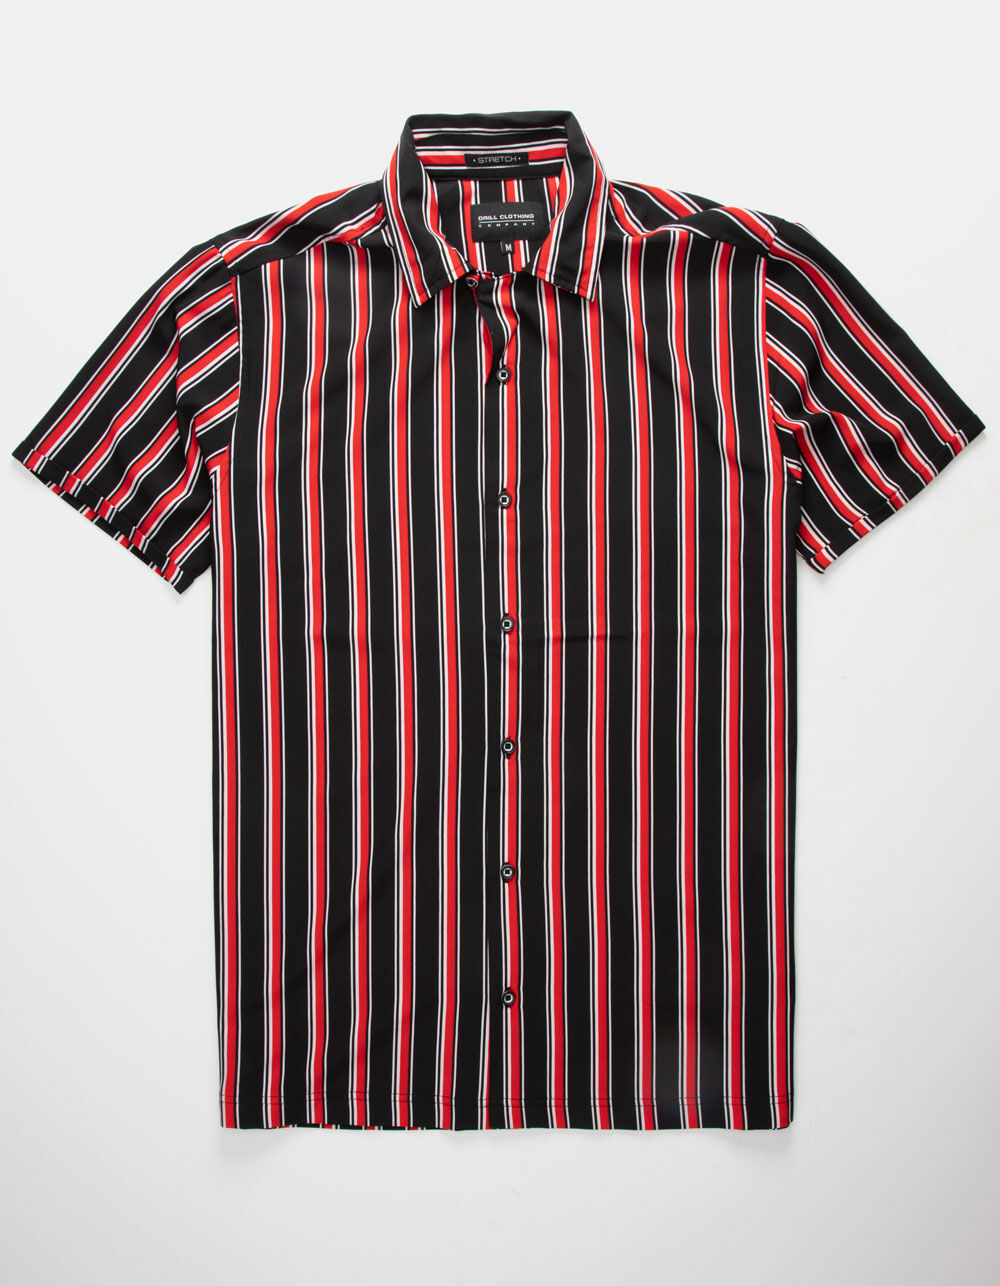 Image of DRILL CLOTHING VERTICAL STRIPE RED & BLACK SHIRT